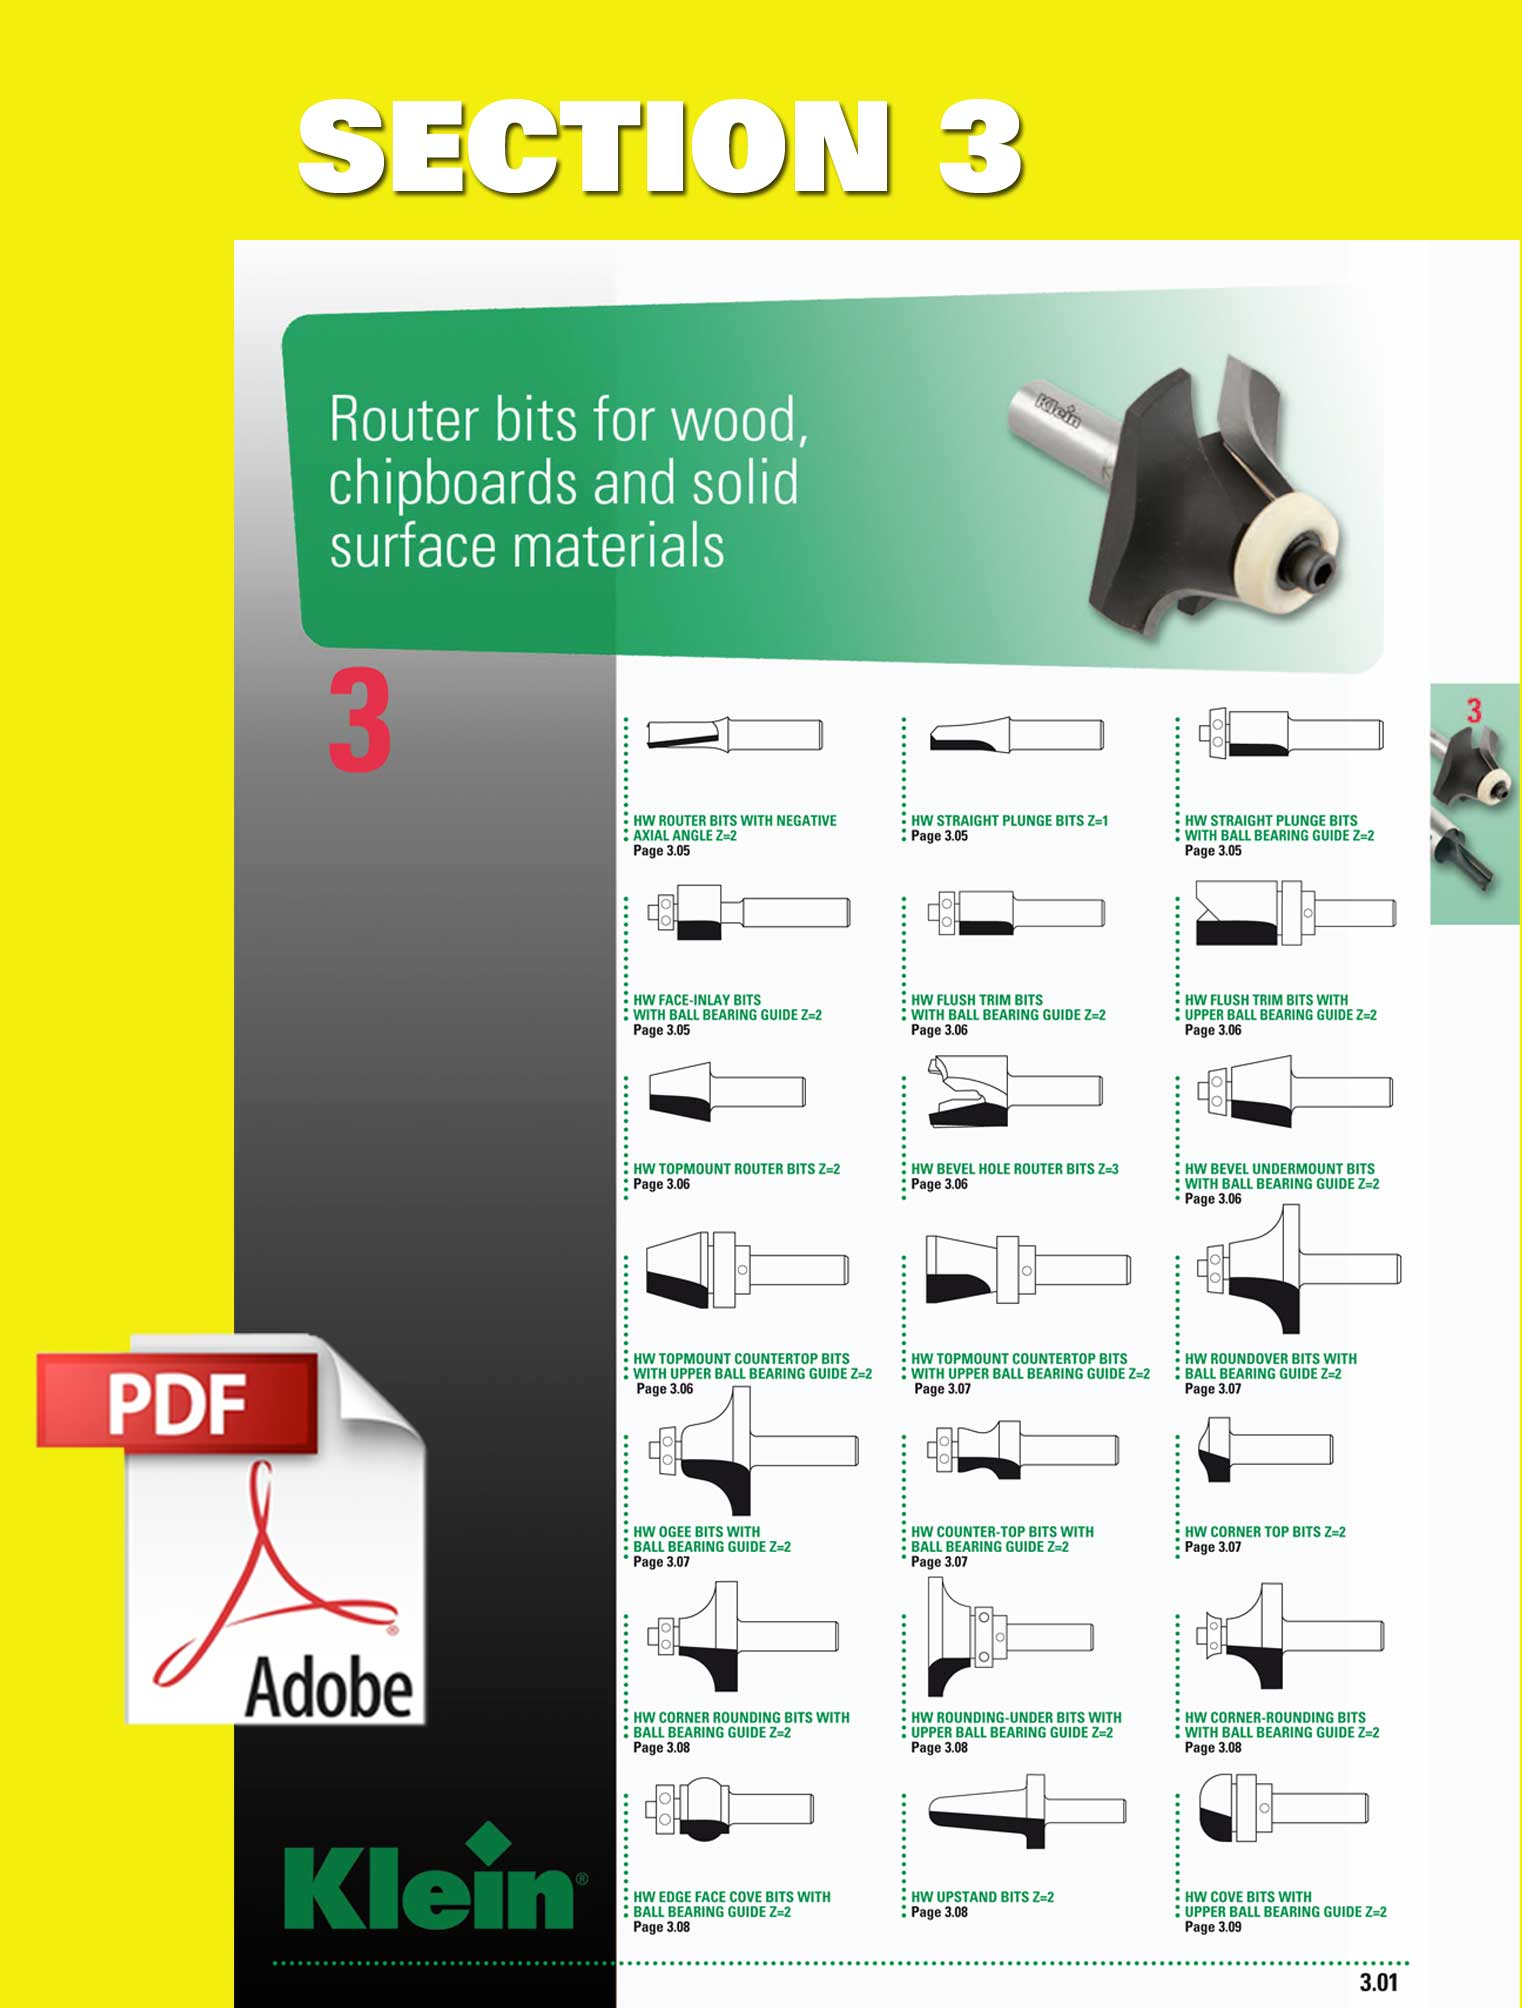 router bits for wood, chipboards, solid surface, bits for elu, bits for scheer, domino joints, bits for festool, versofix